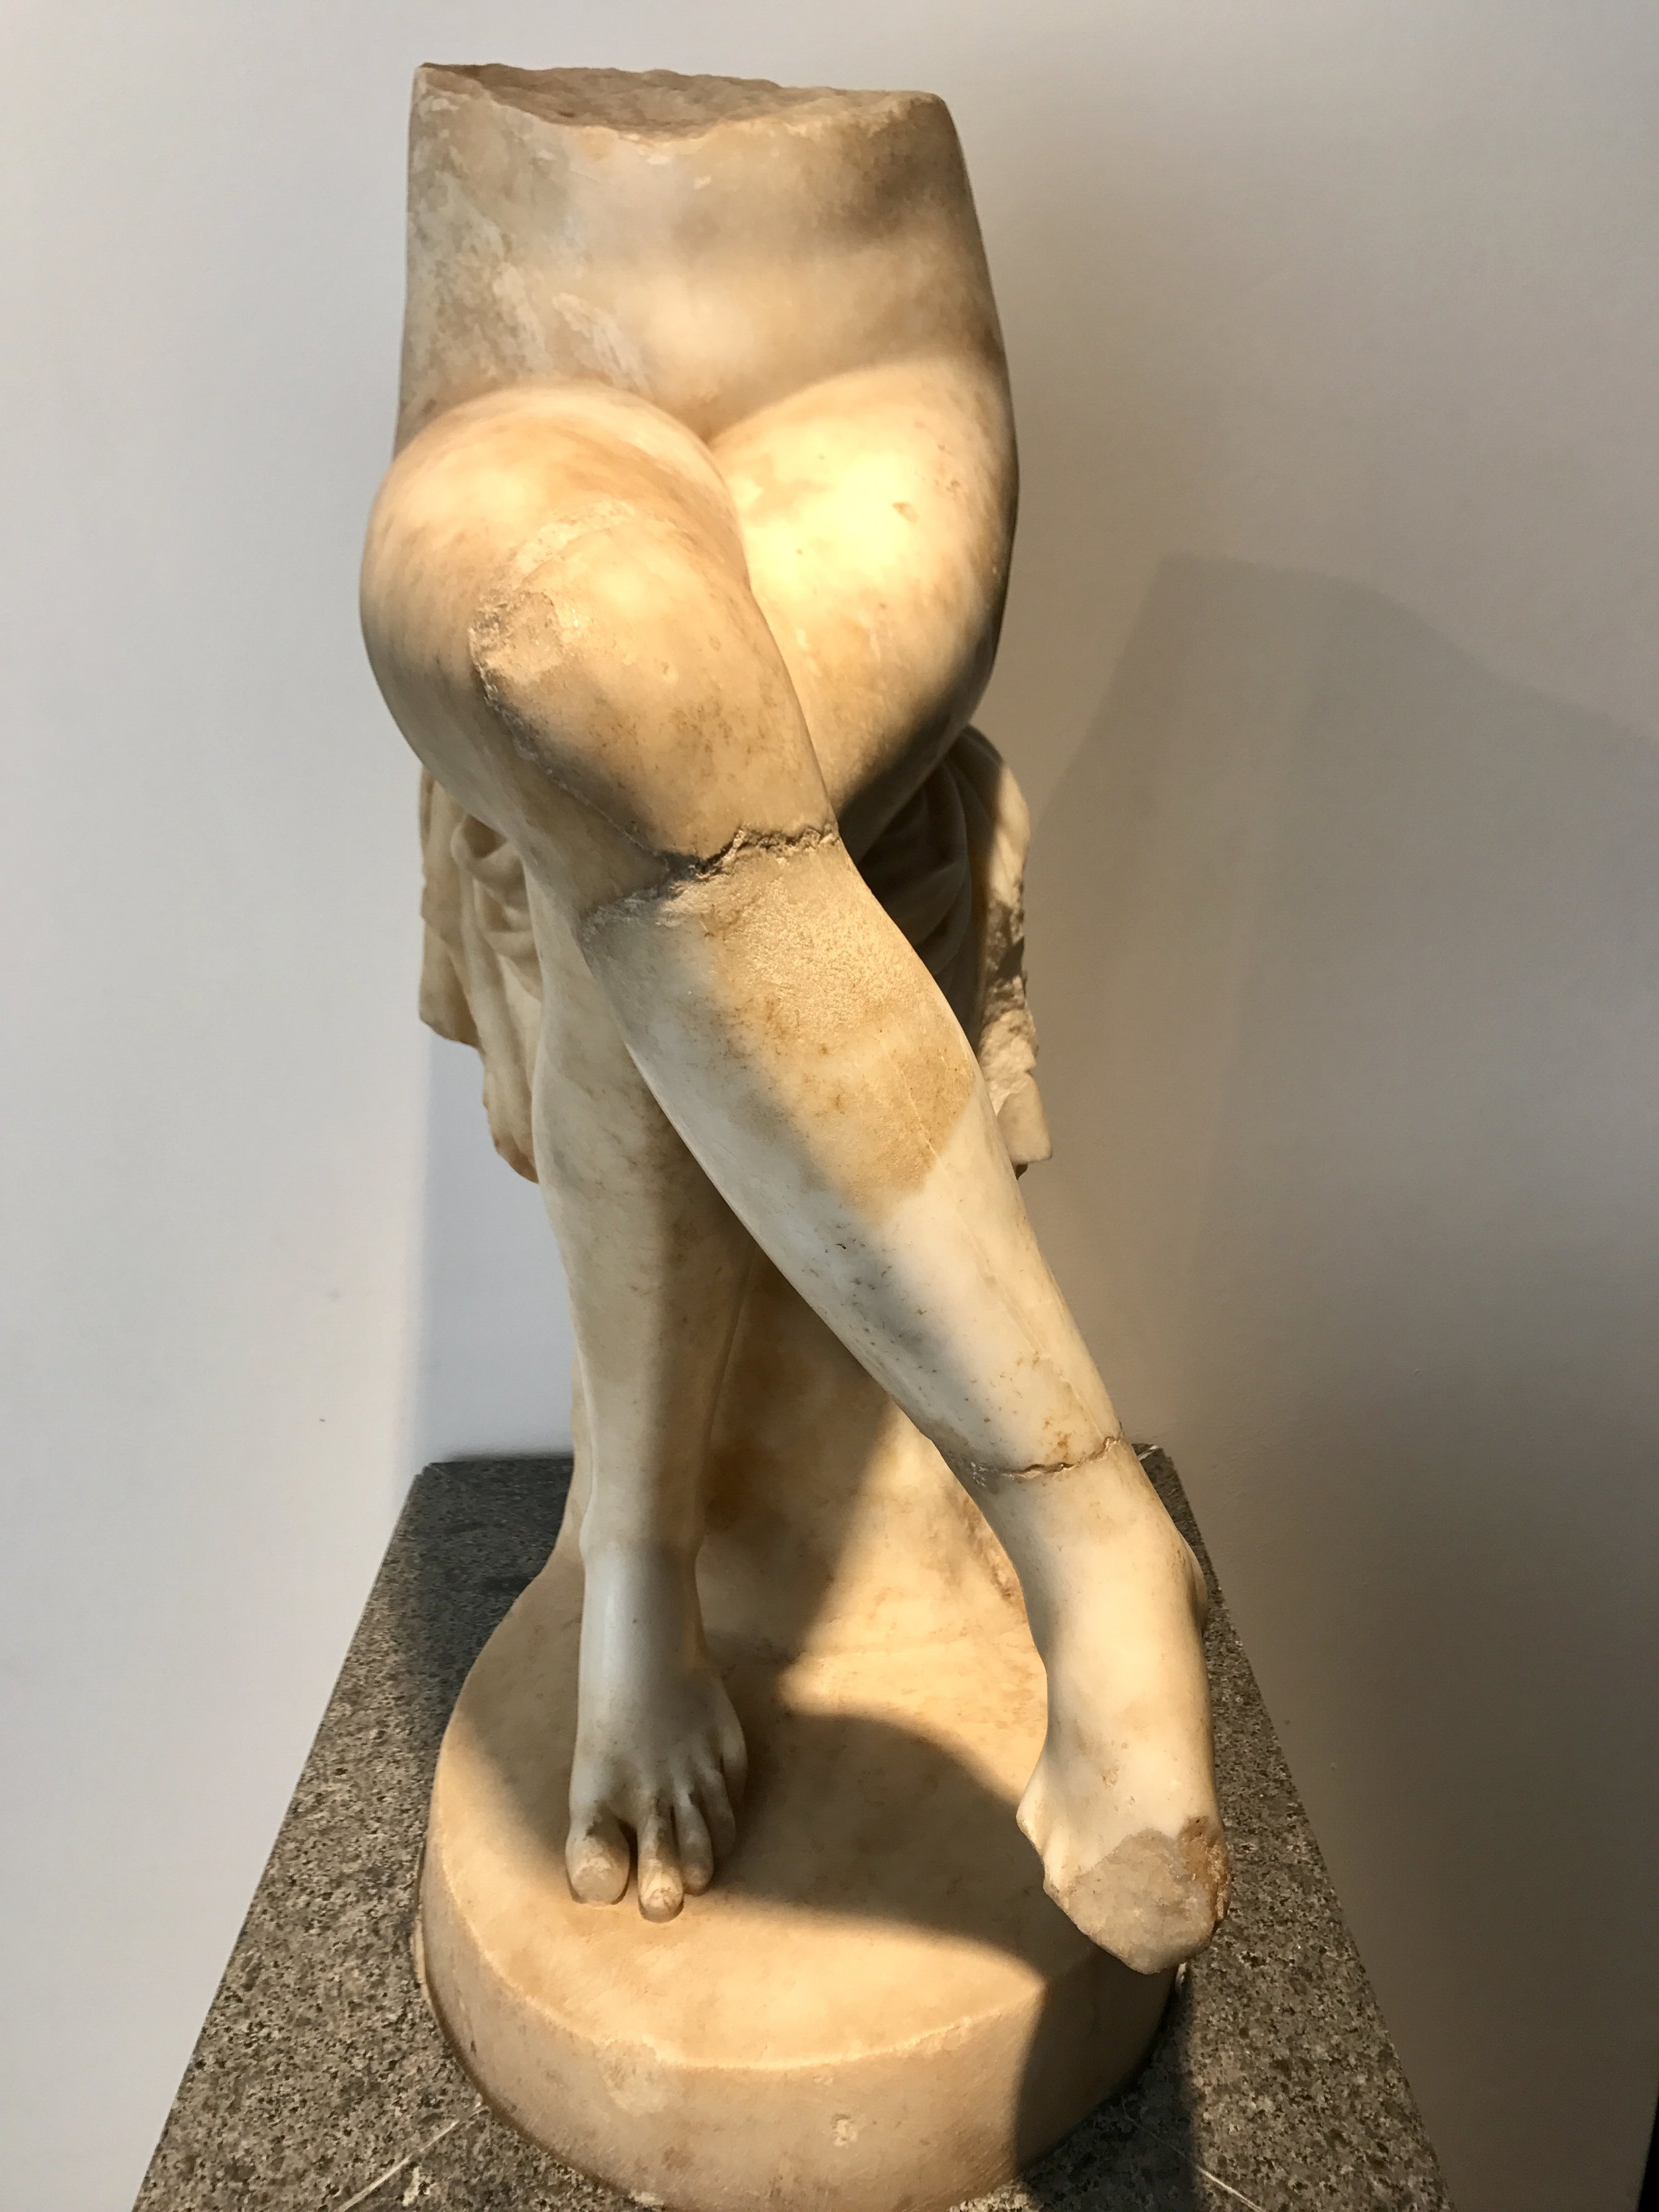 I don't recall seeing much ancient sculpture with simple, perfect, naked crossed legs.